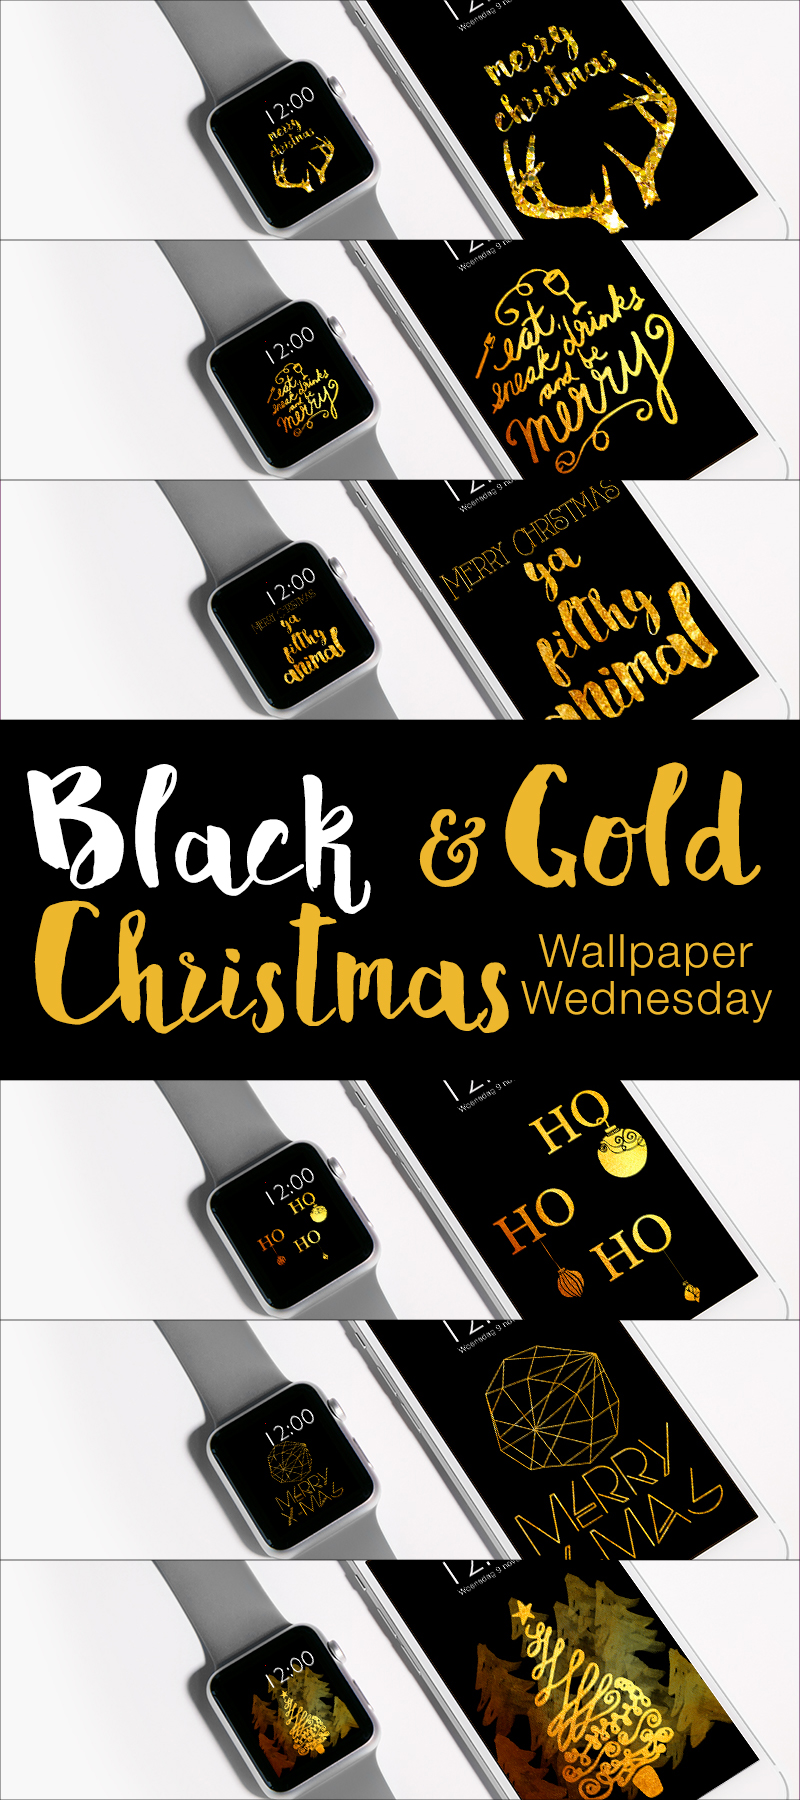 Wallpaper Wednesday - Black and Gold Christmas - ©debbieschrijft.nl